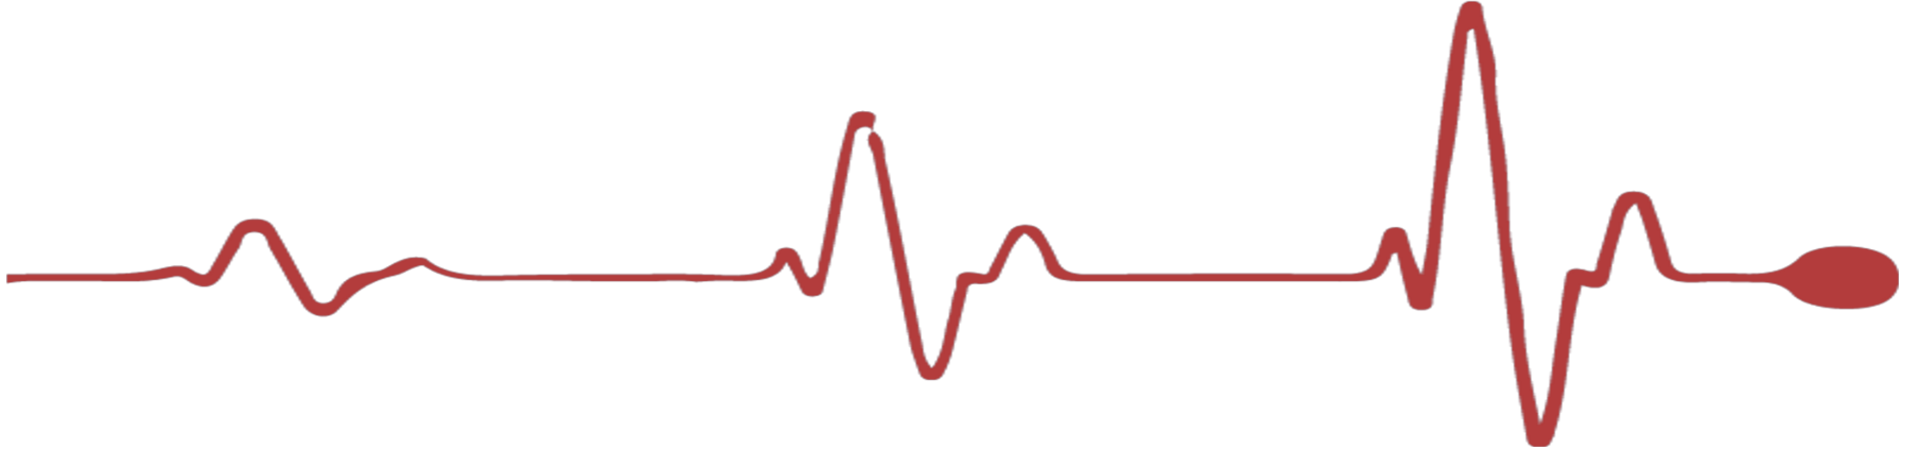 Heart pulse png. Heartbeat hd transparent images